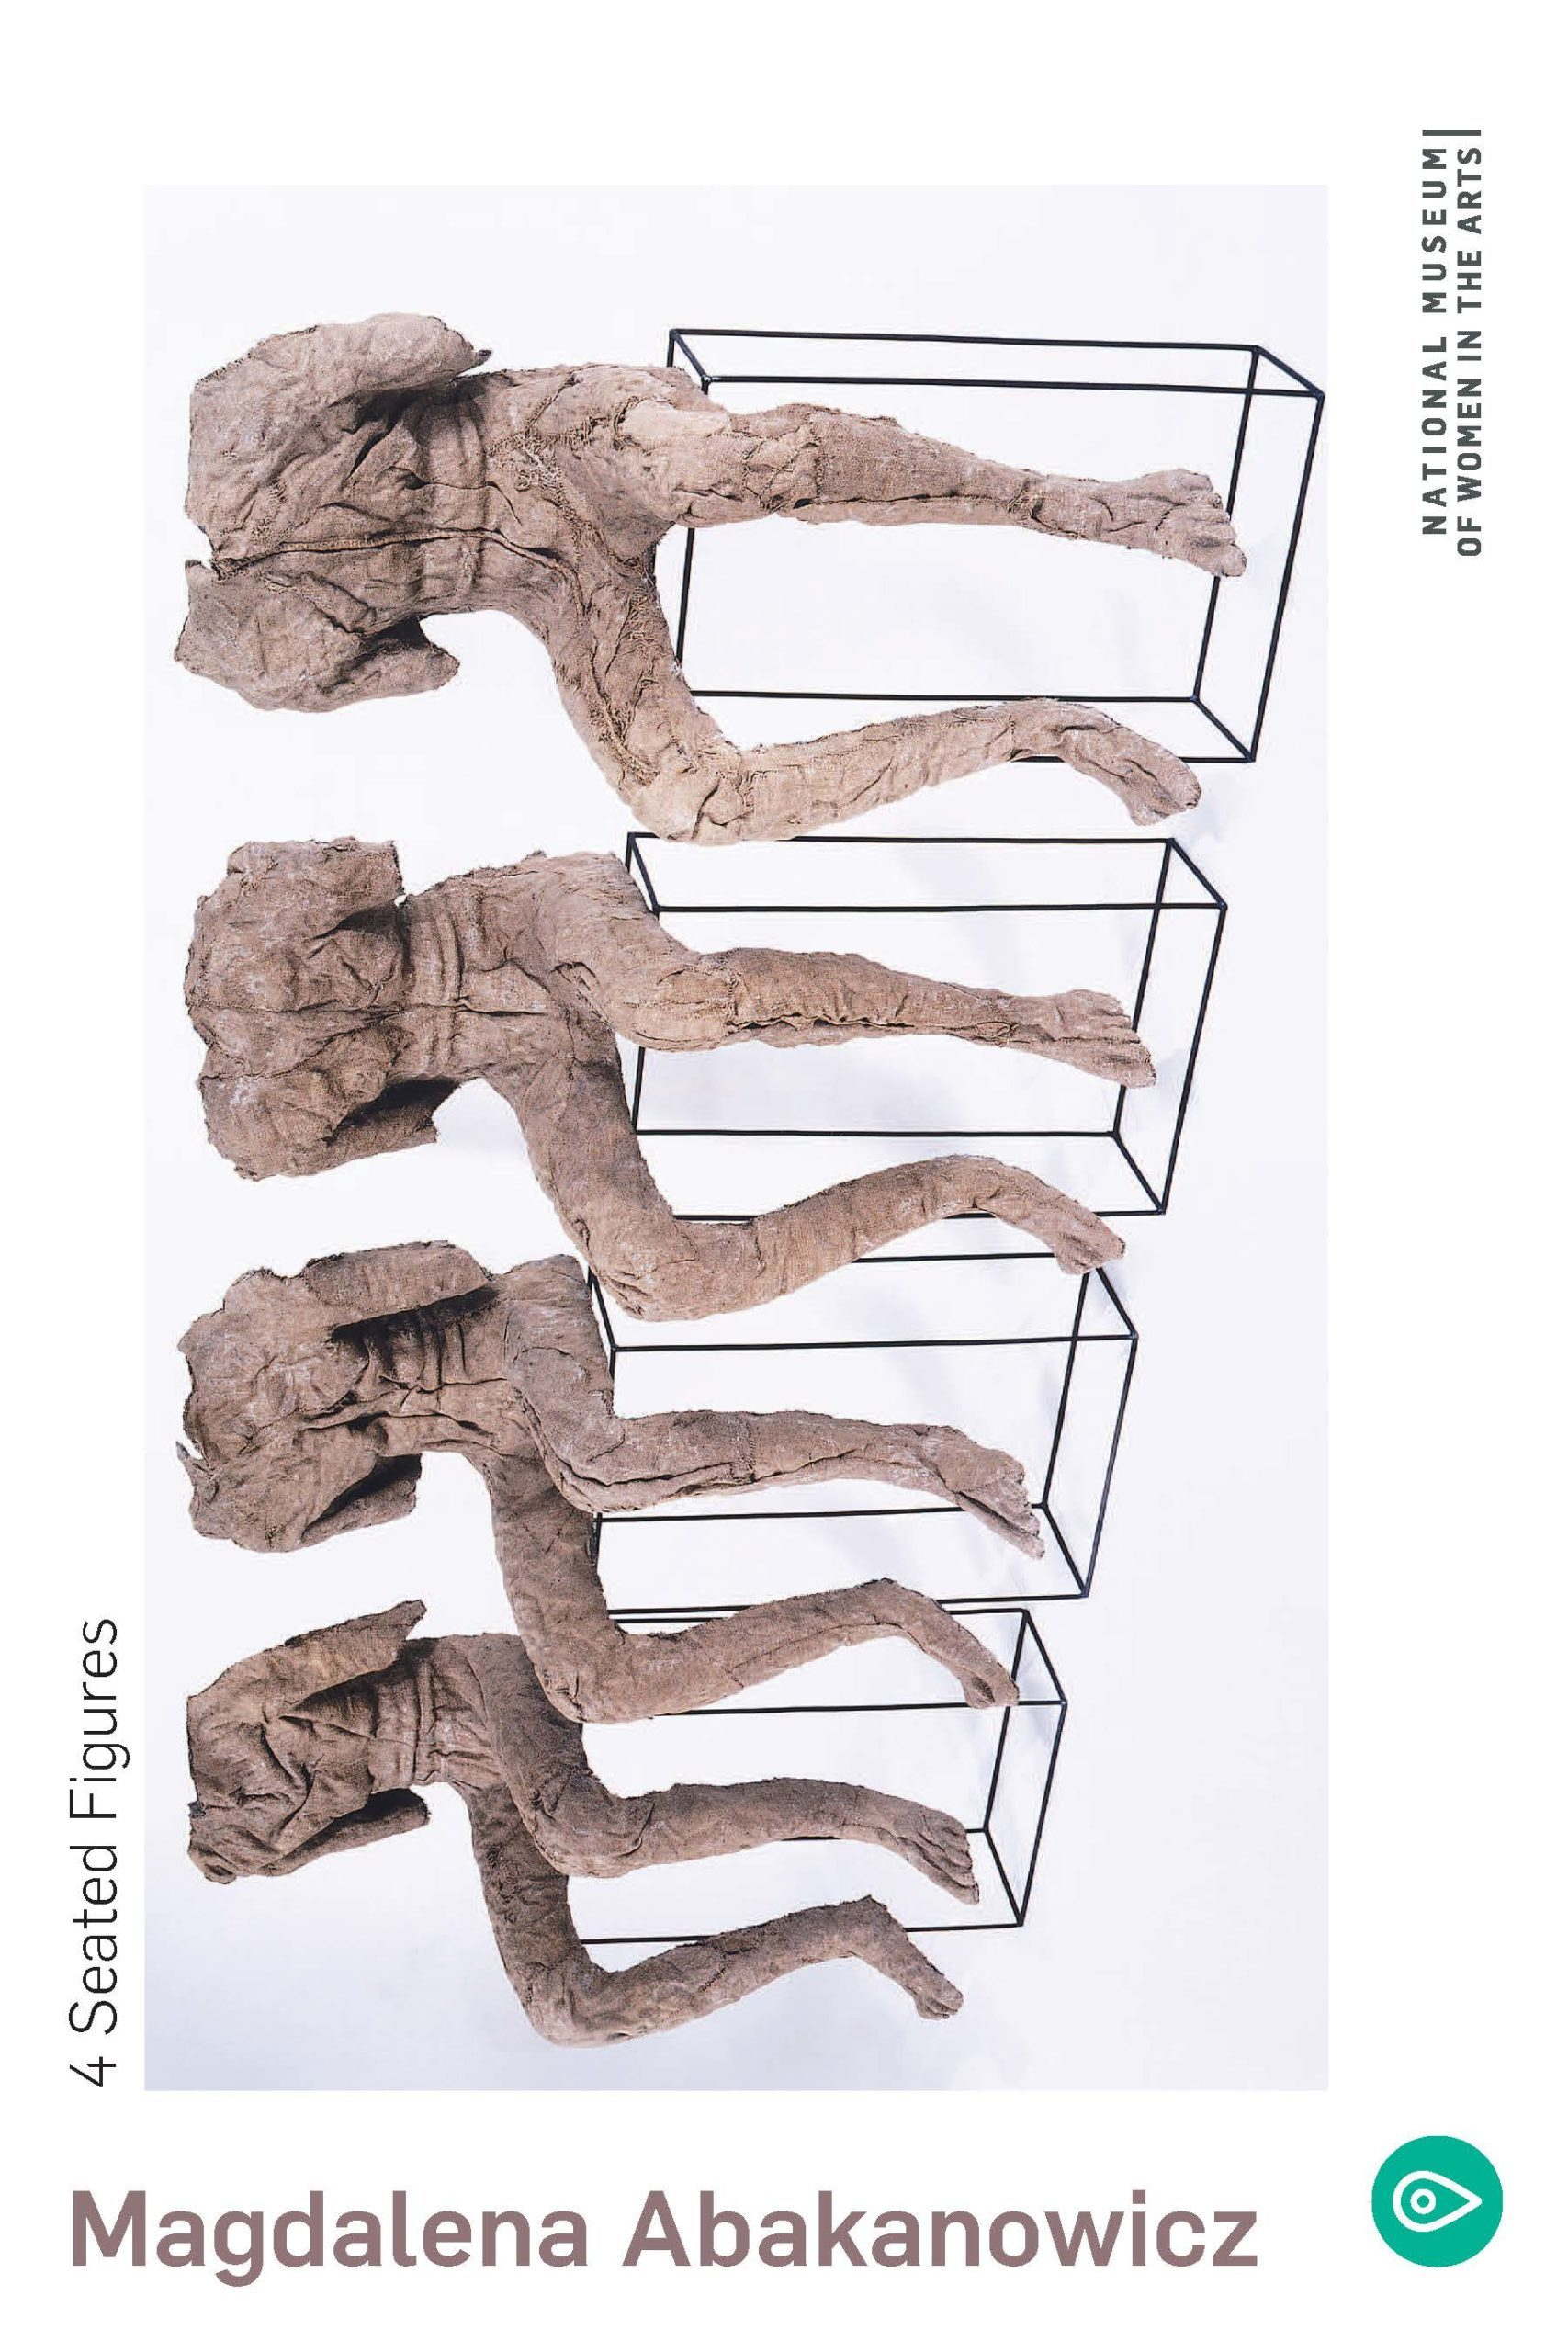 Facts about Magdalena Abakanowicz's sculpture, 4 Seated Figures (PDF)